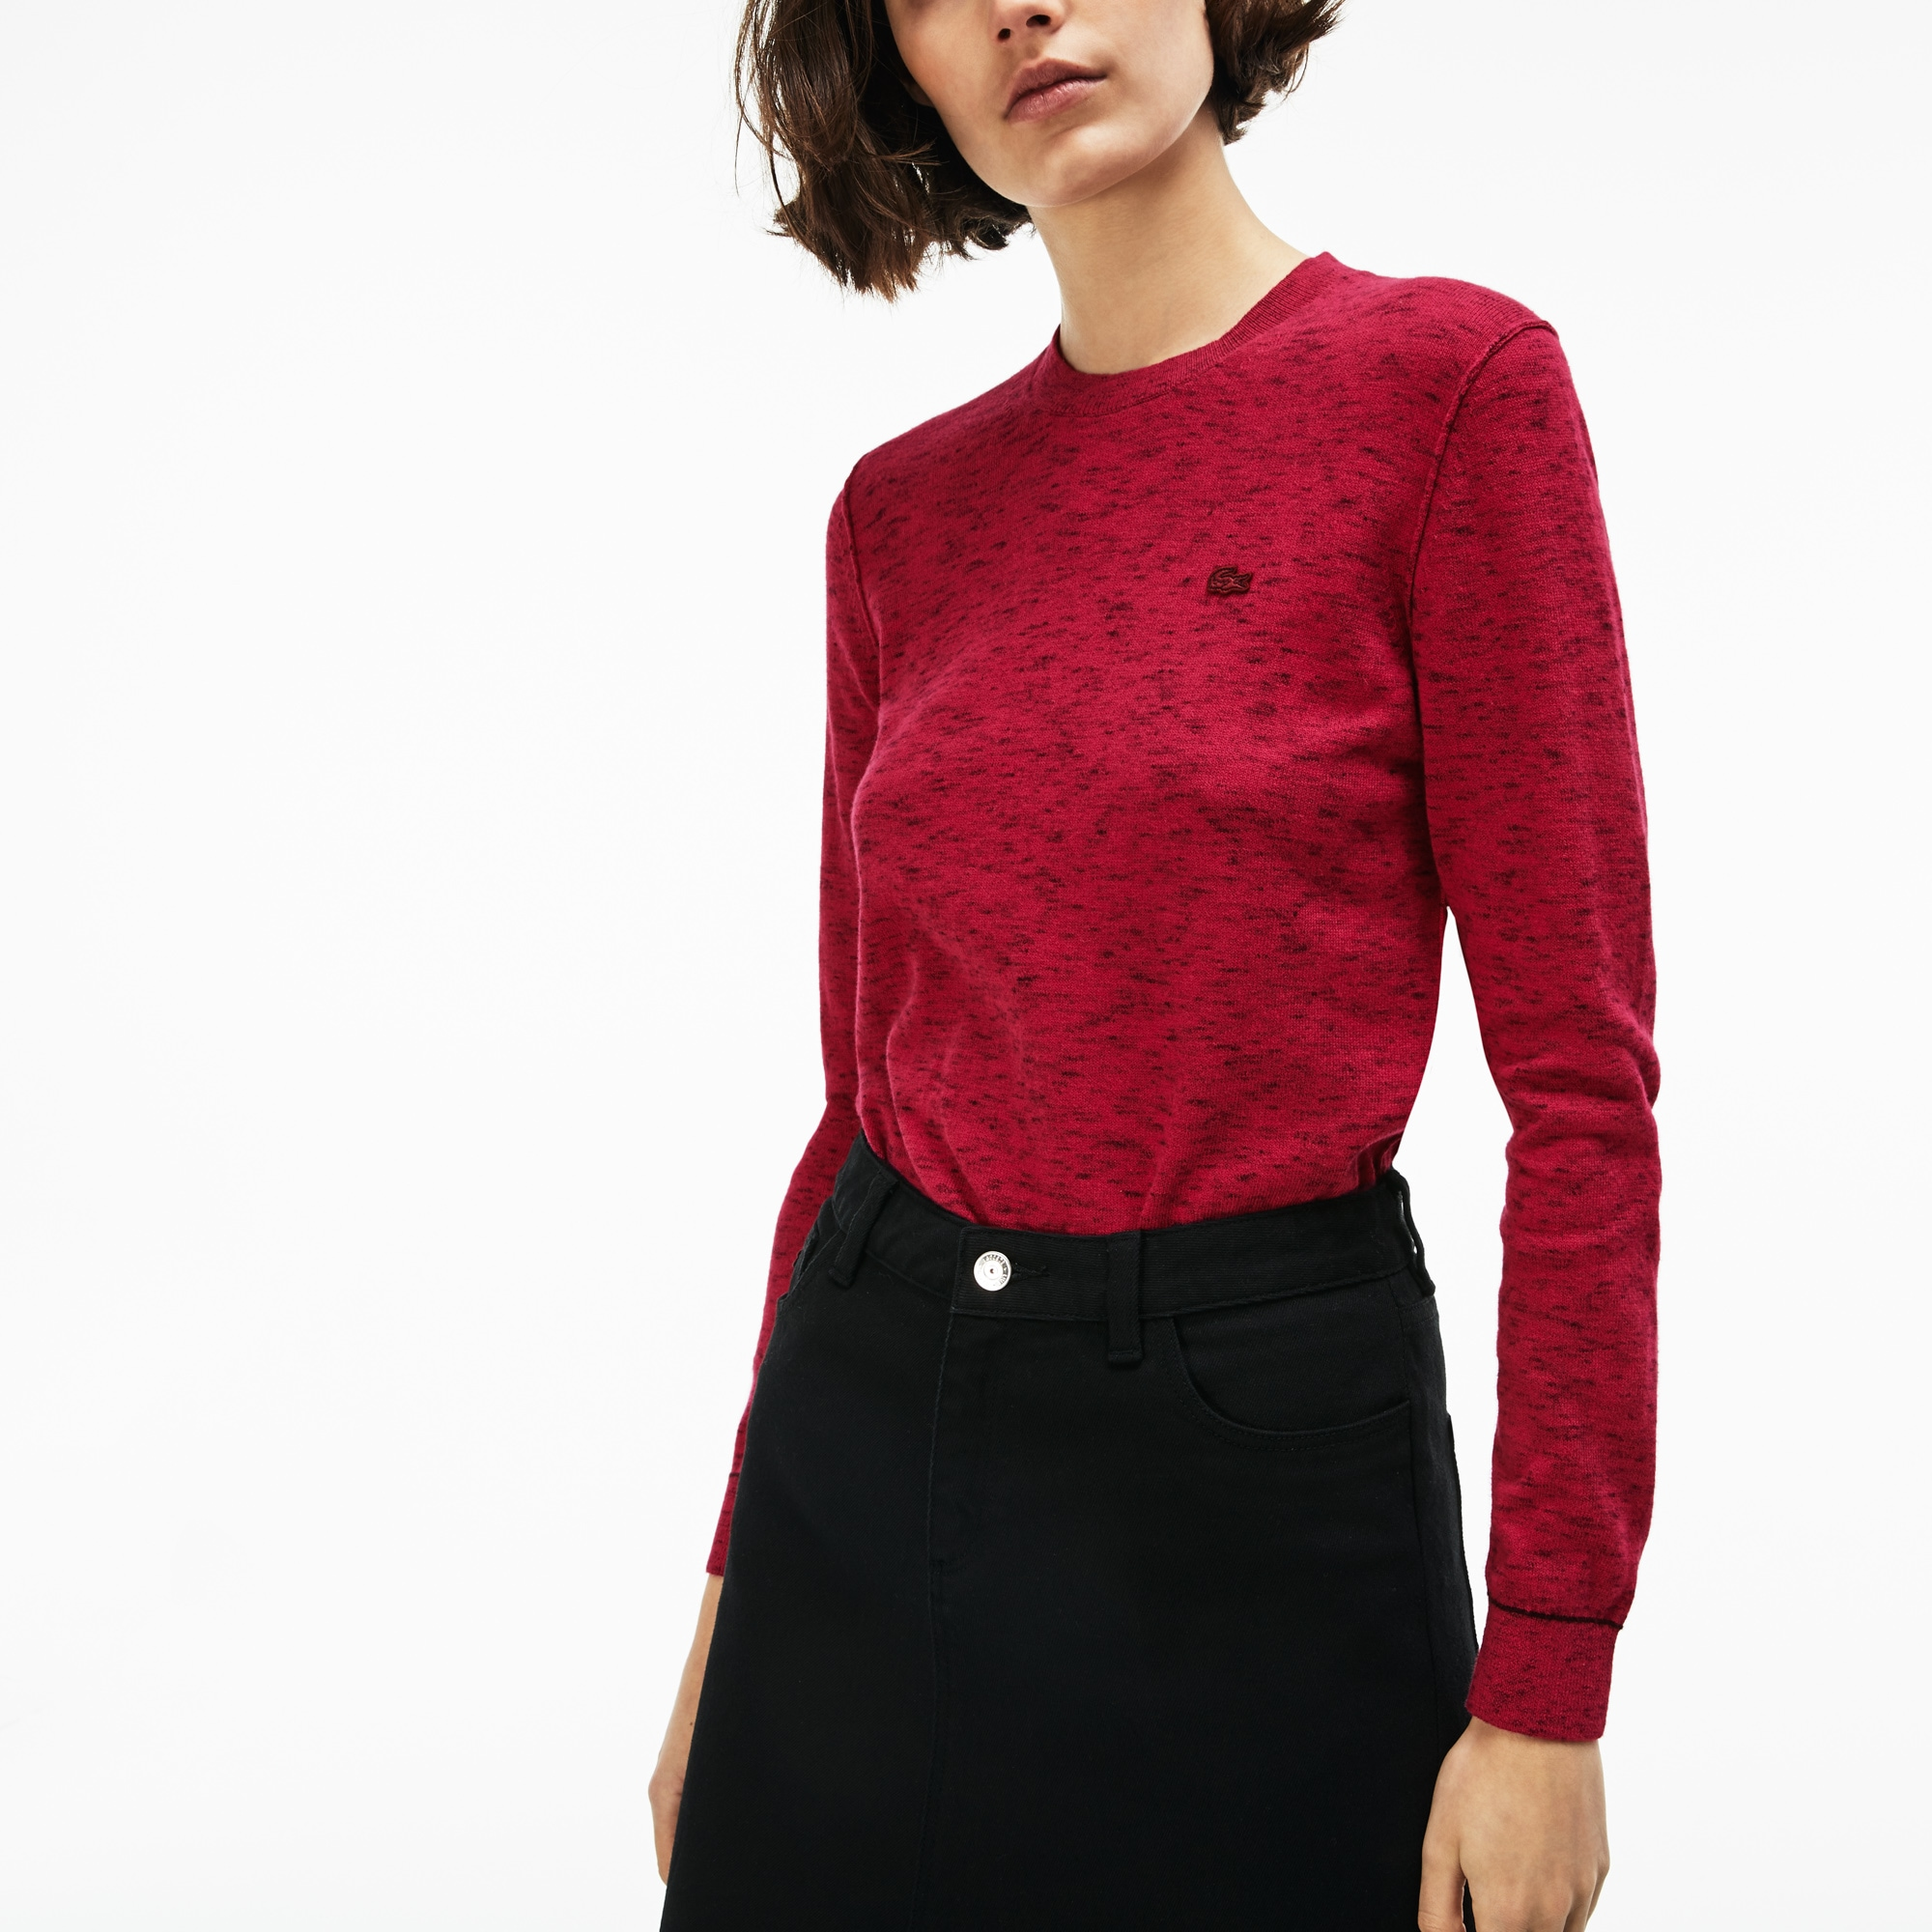 Women's Lacoste LIVE Crew Neck Cotton And Cashmere Jersey Sweater